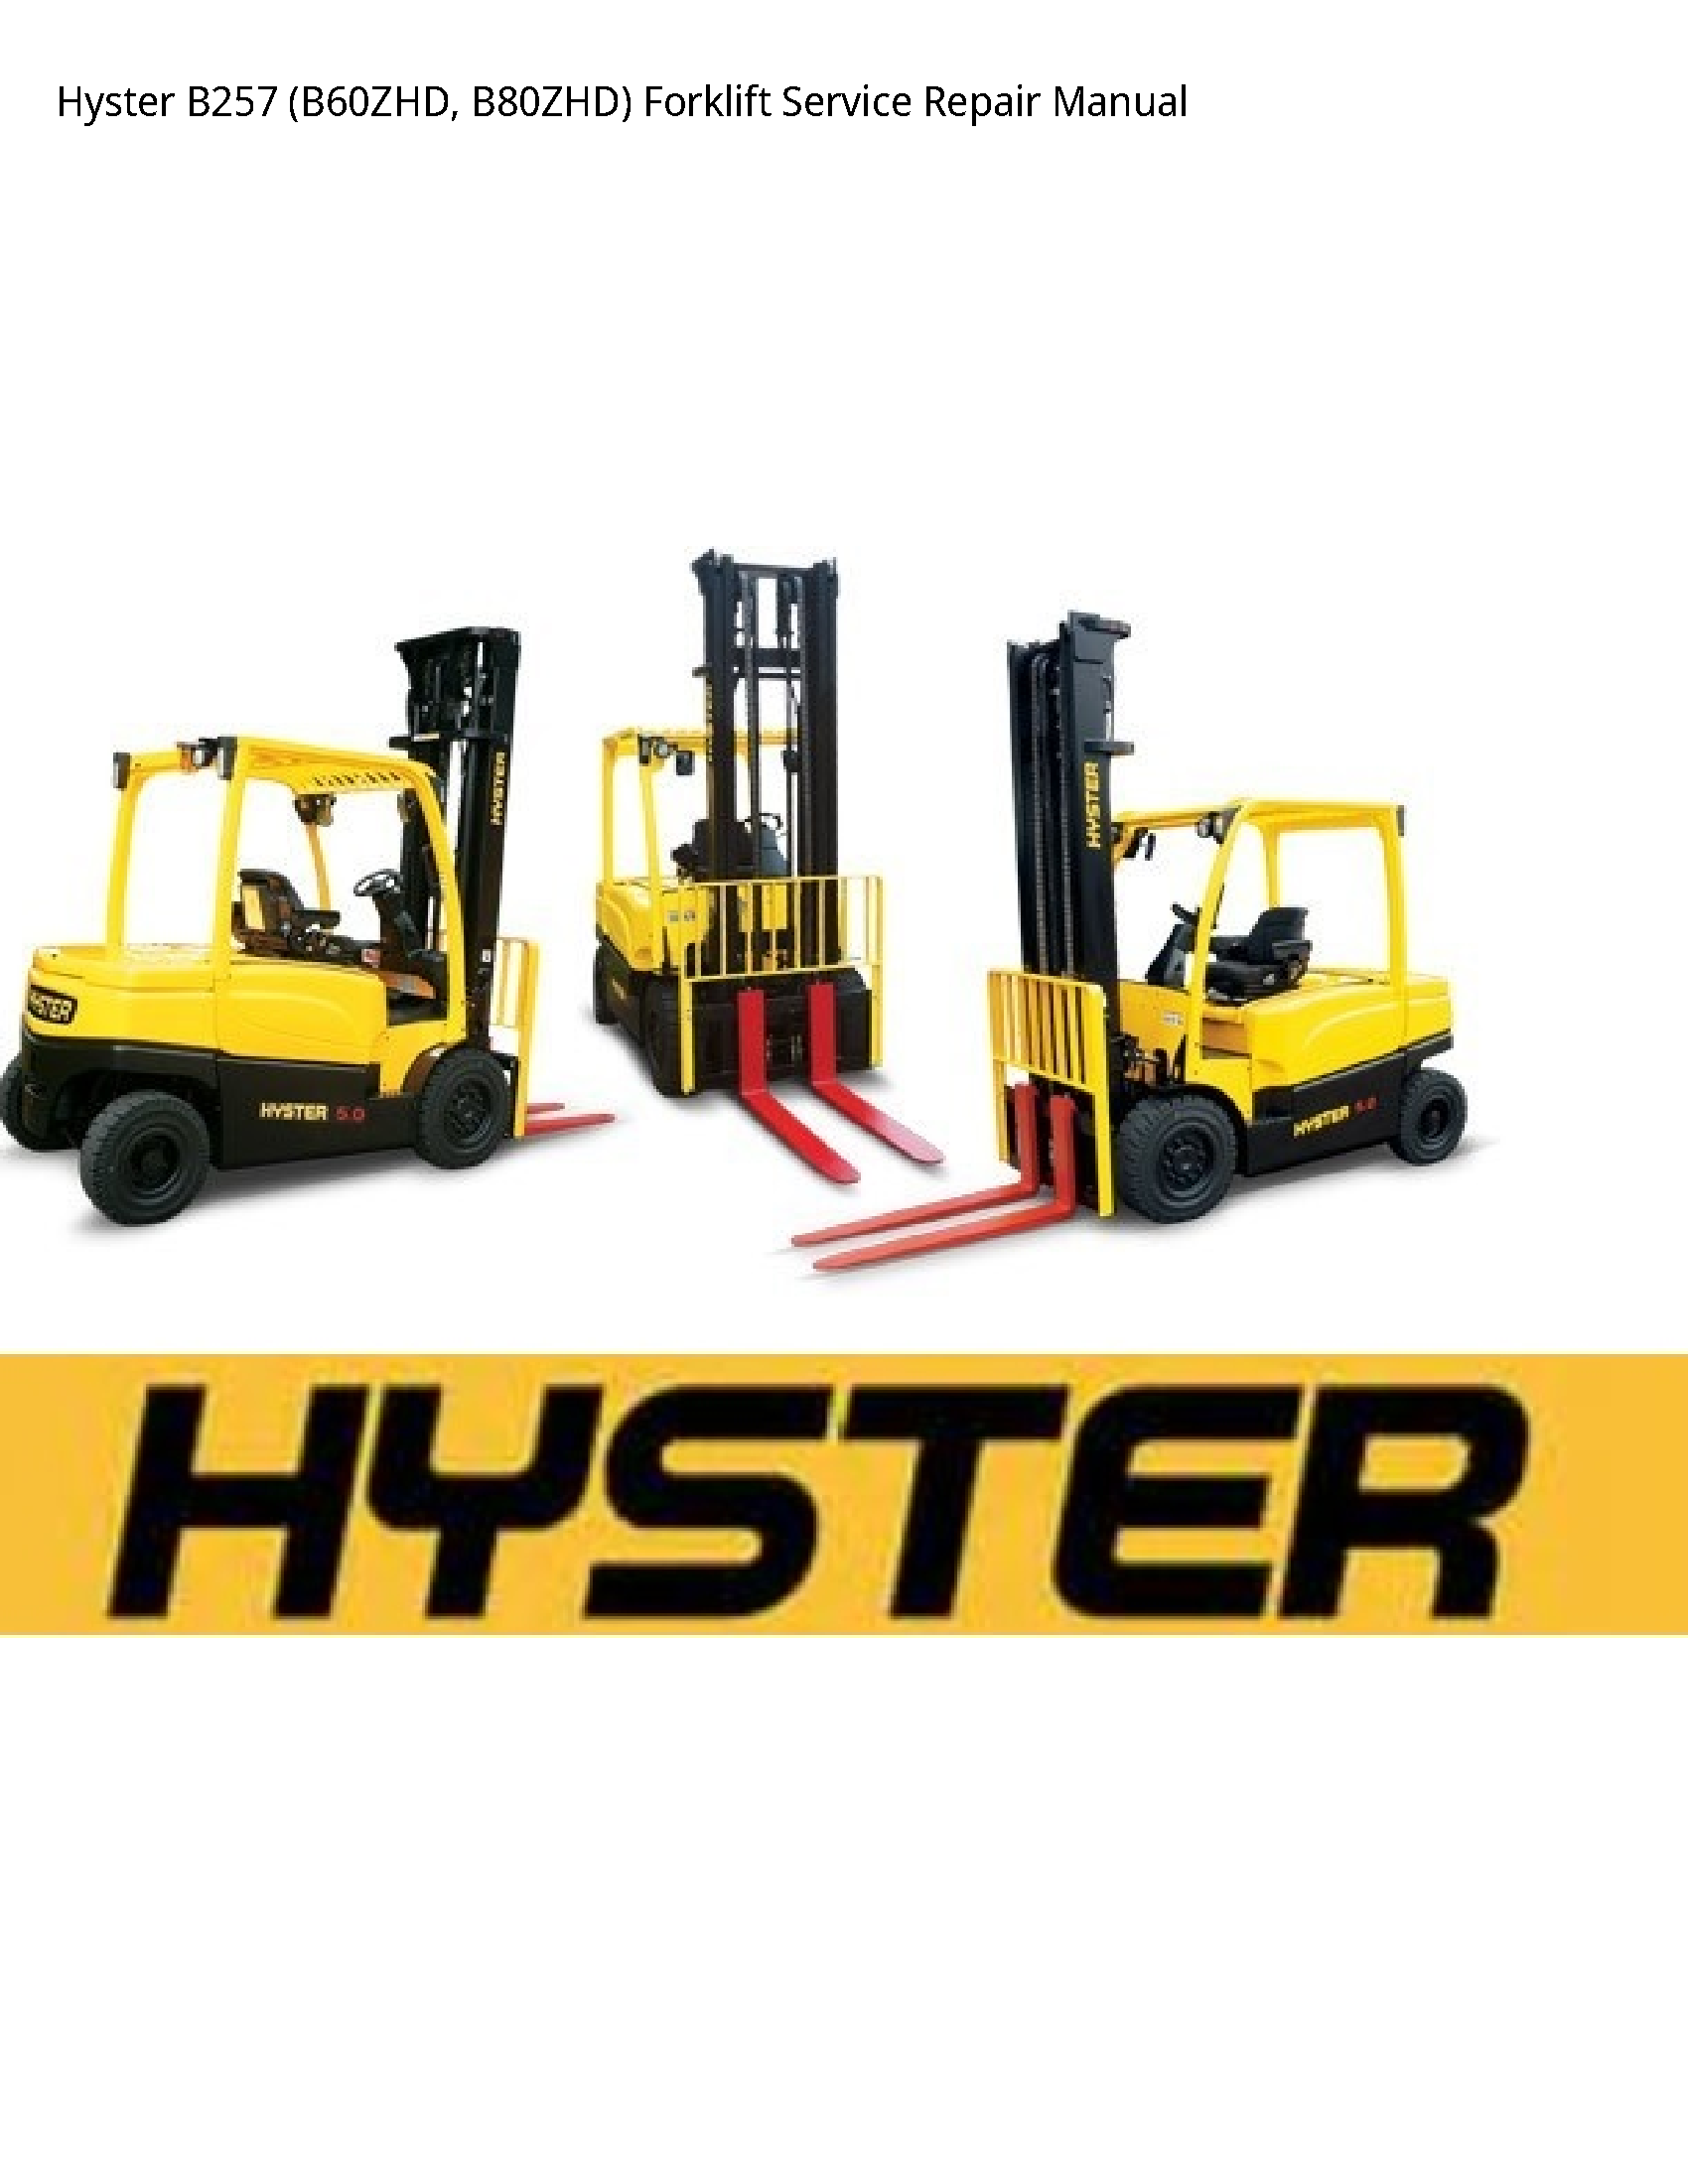 Hyster B257 Forklift manual